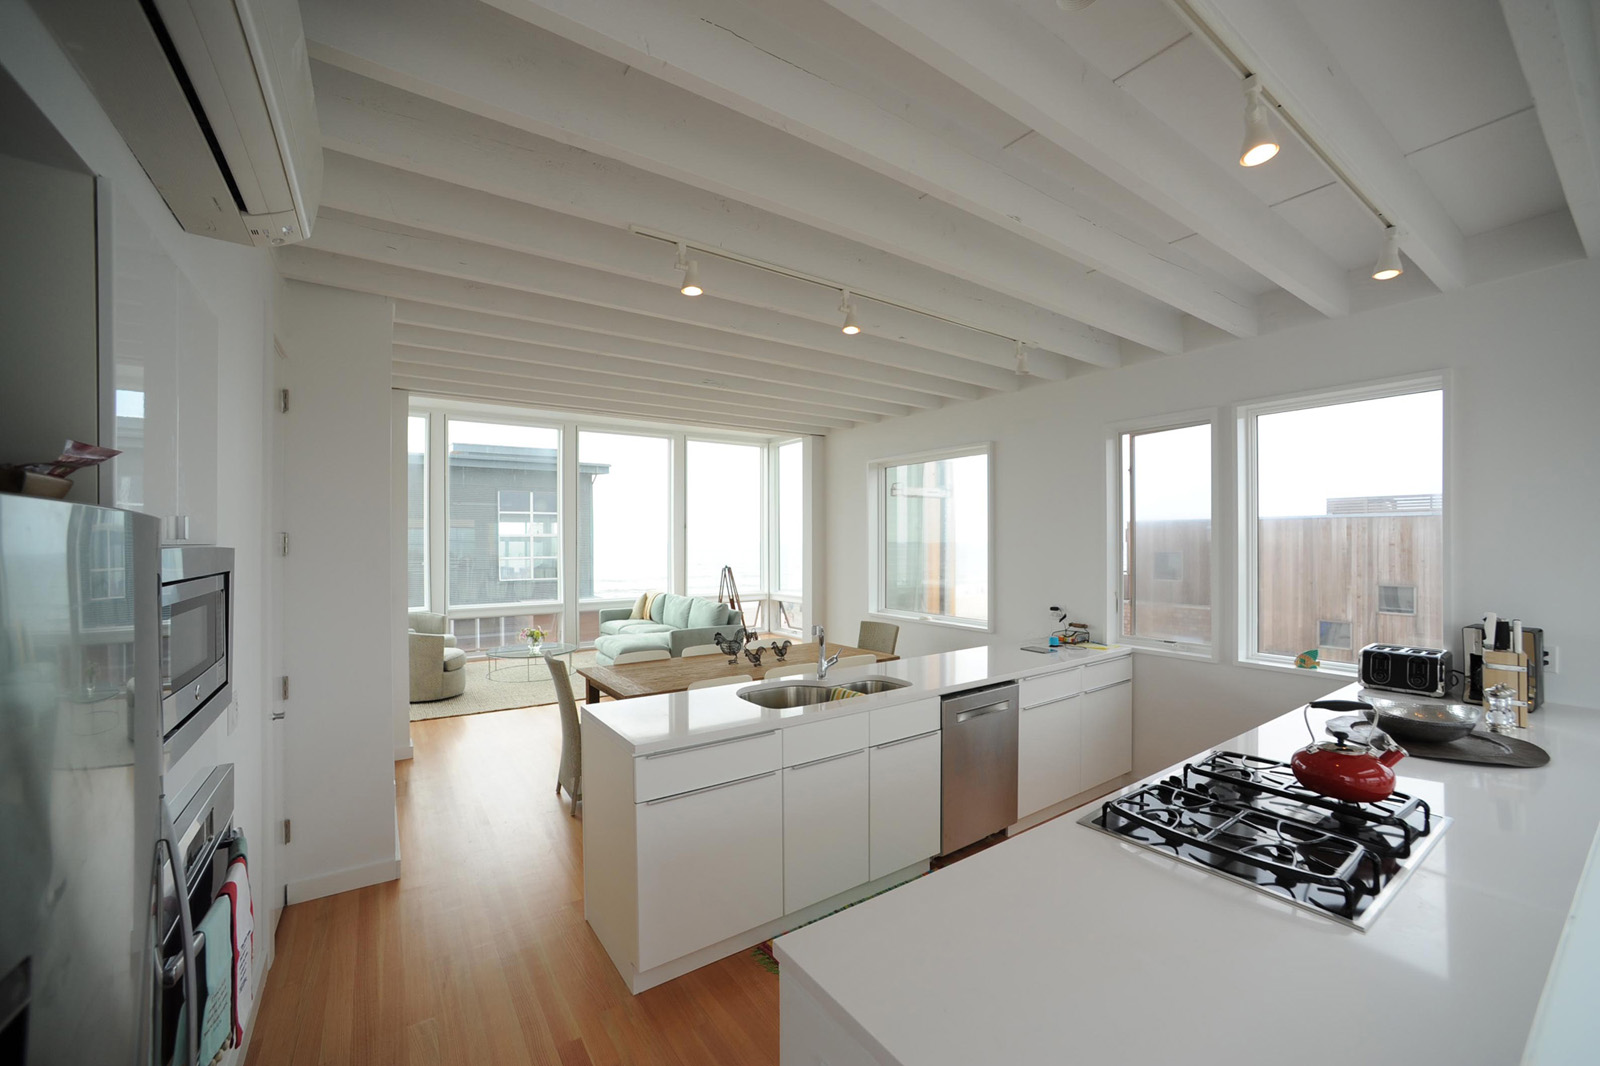 6_CLOUTIER_KITCHEN 2.jpg